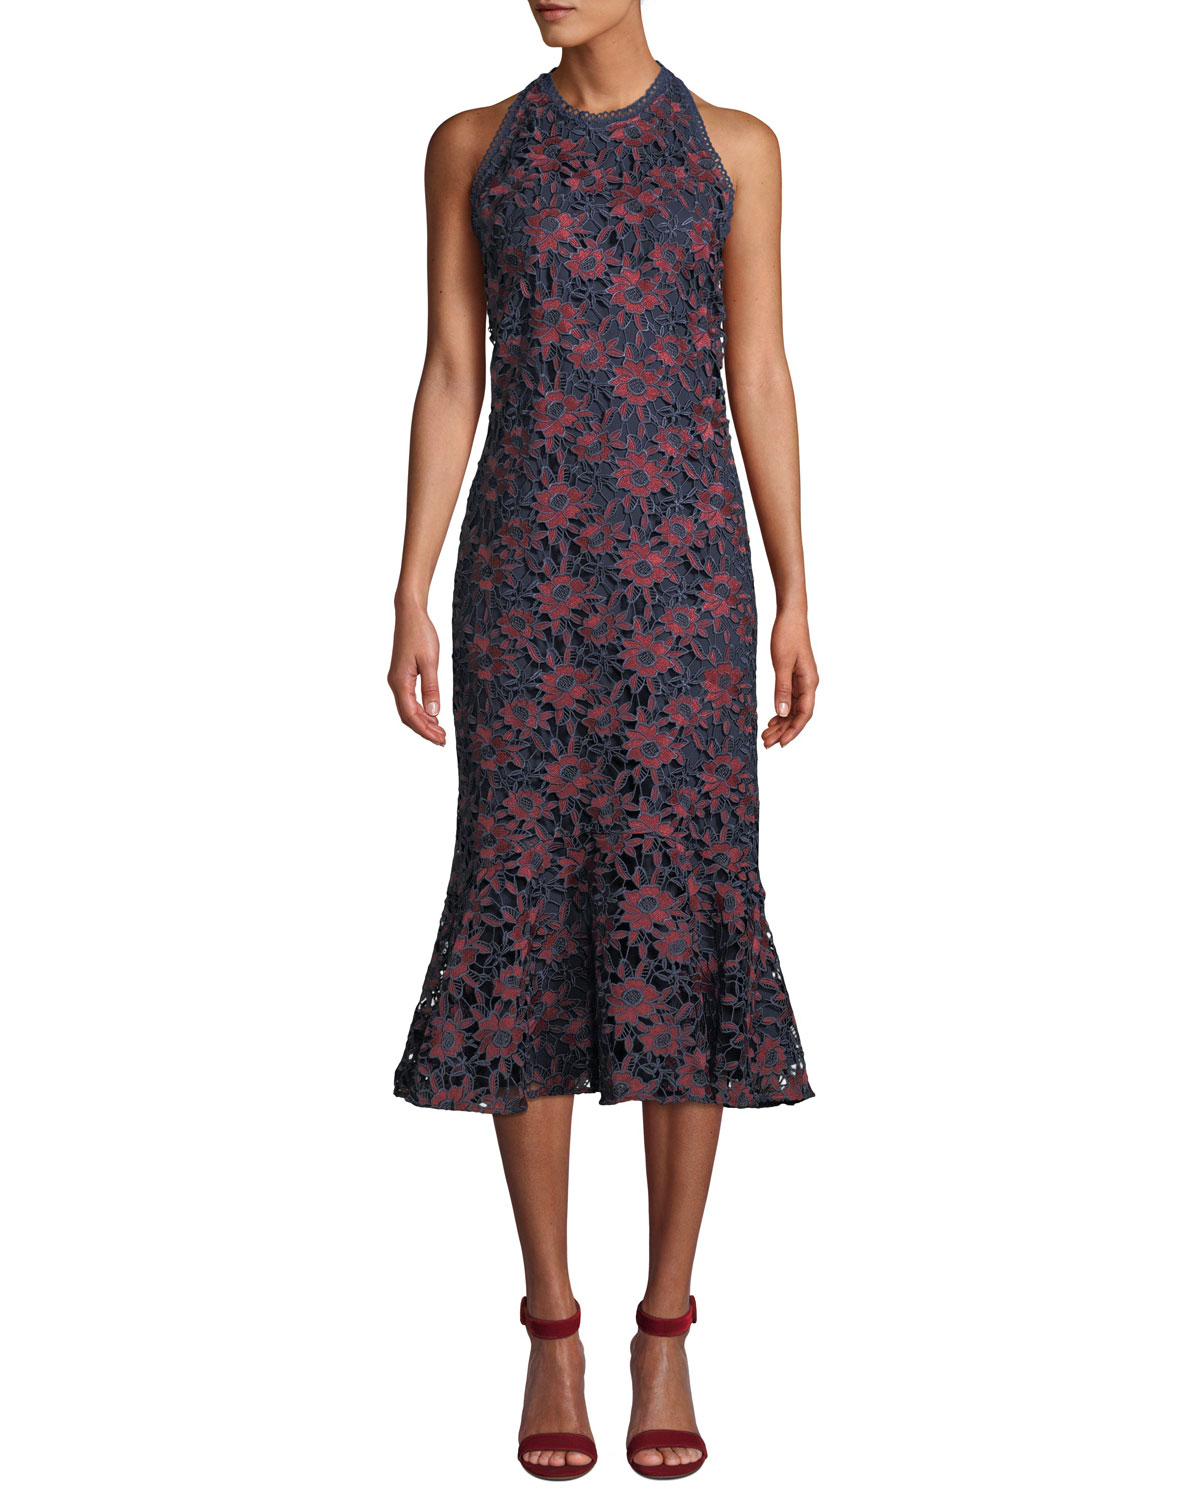 35fee1e9 Shoshanna Tupper Floral Lace Sleeveless Midi Dress | Neiman Marcus